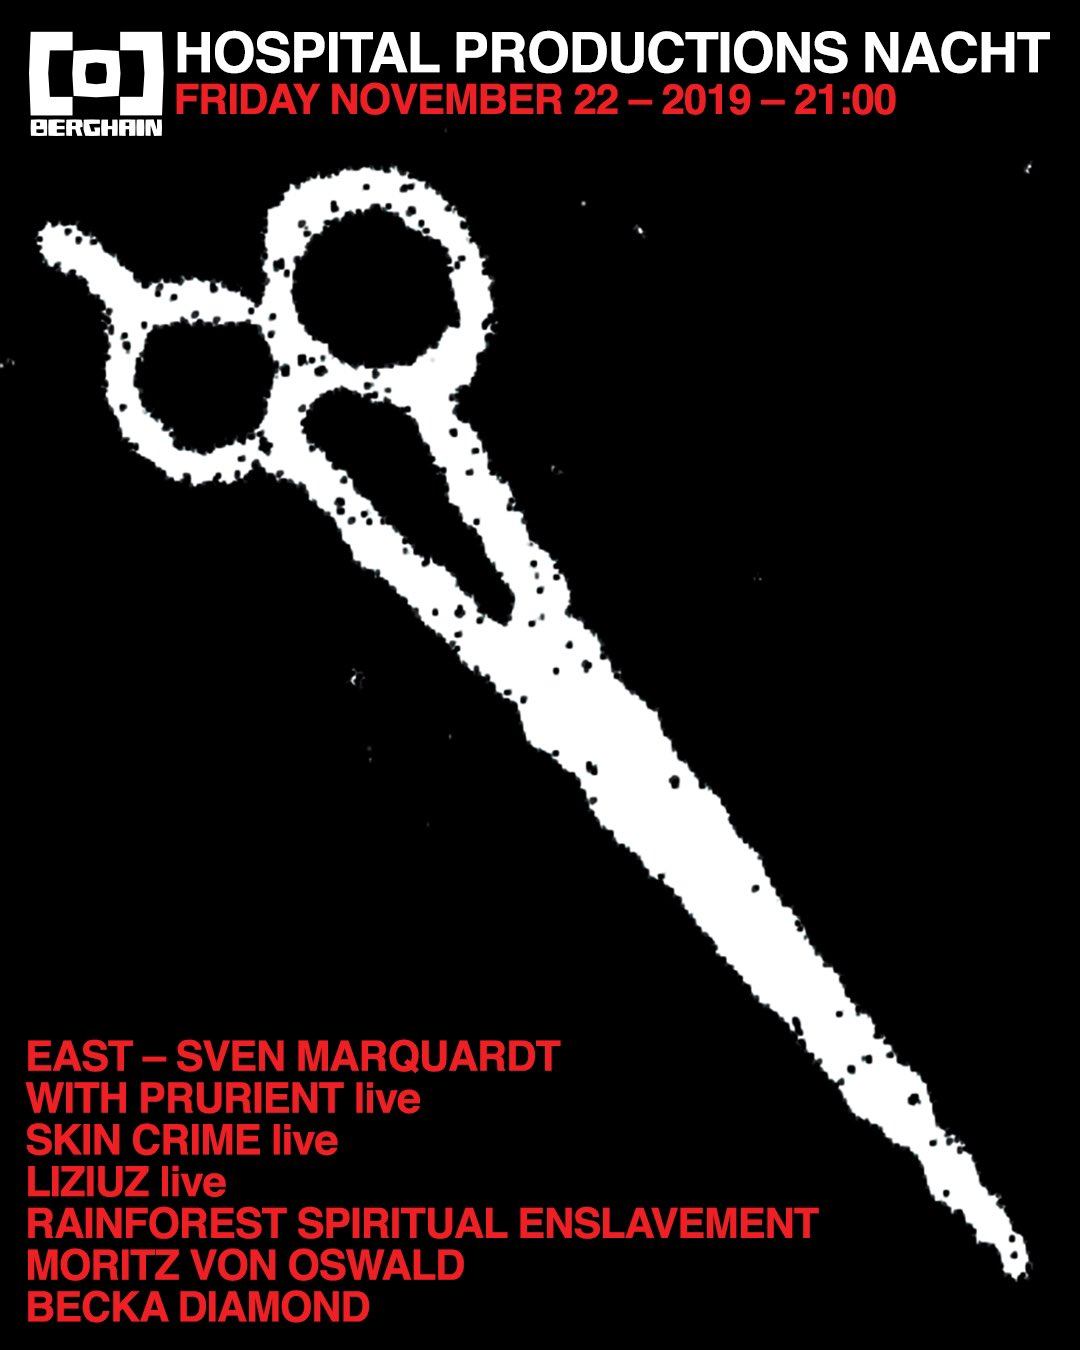 Sven Marquardt & Prurient to play Hospital Productions Nacht in Berghain